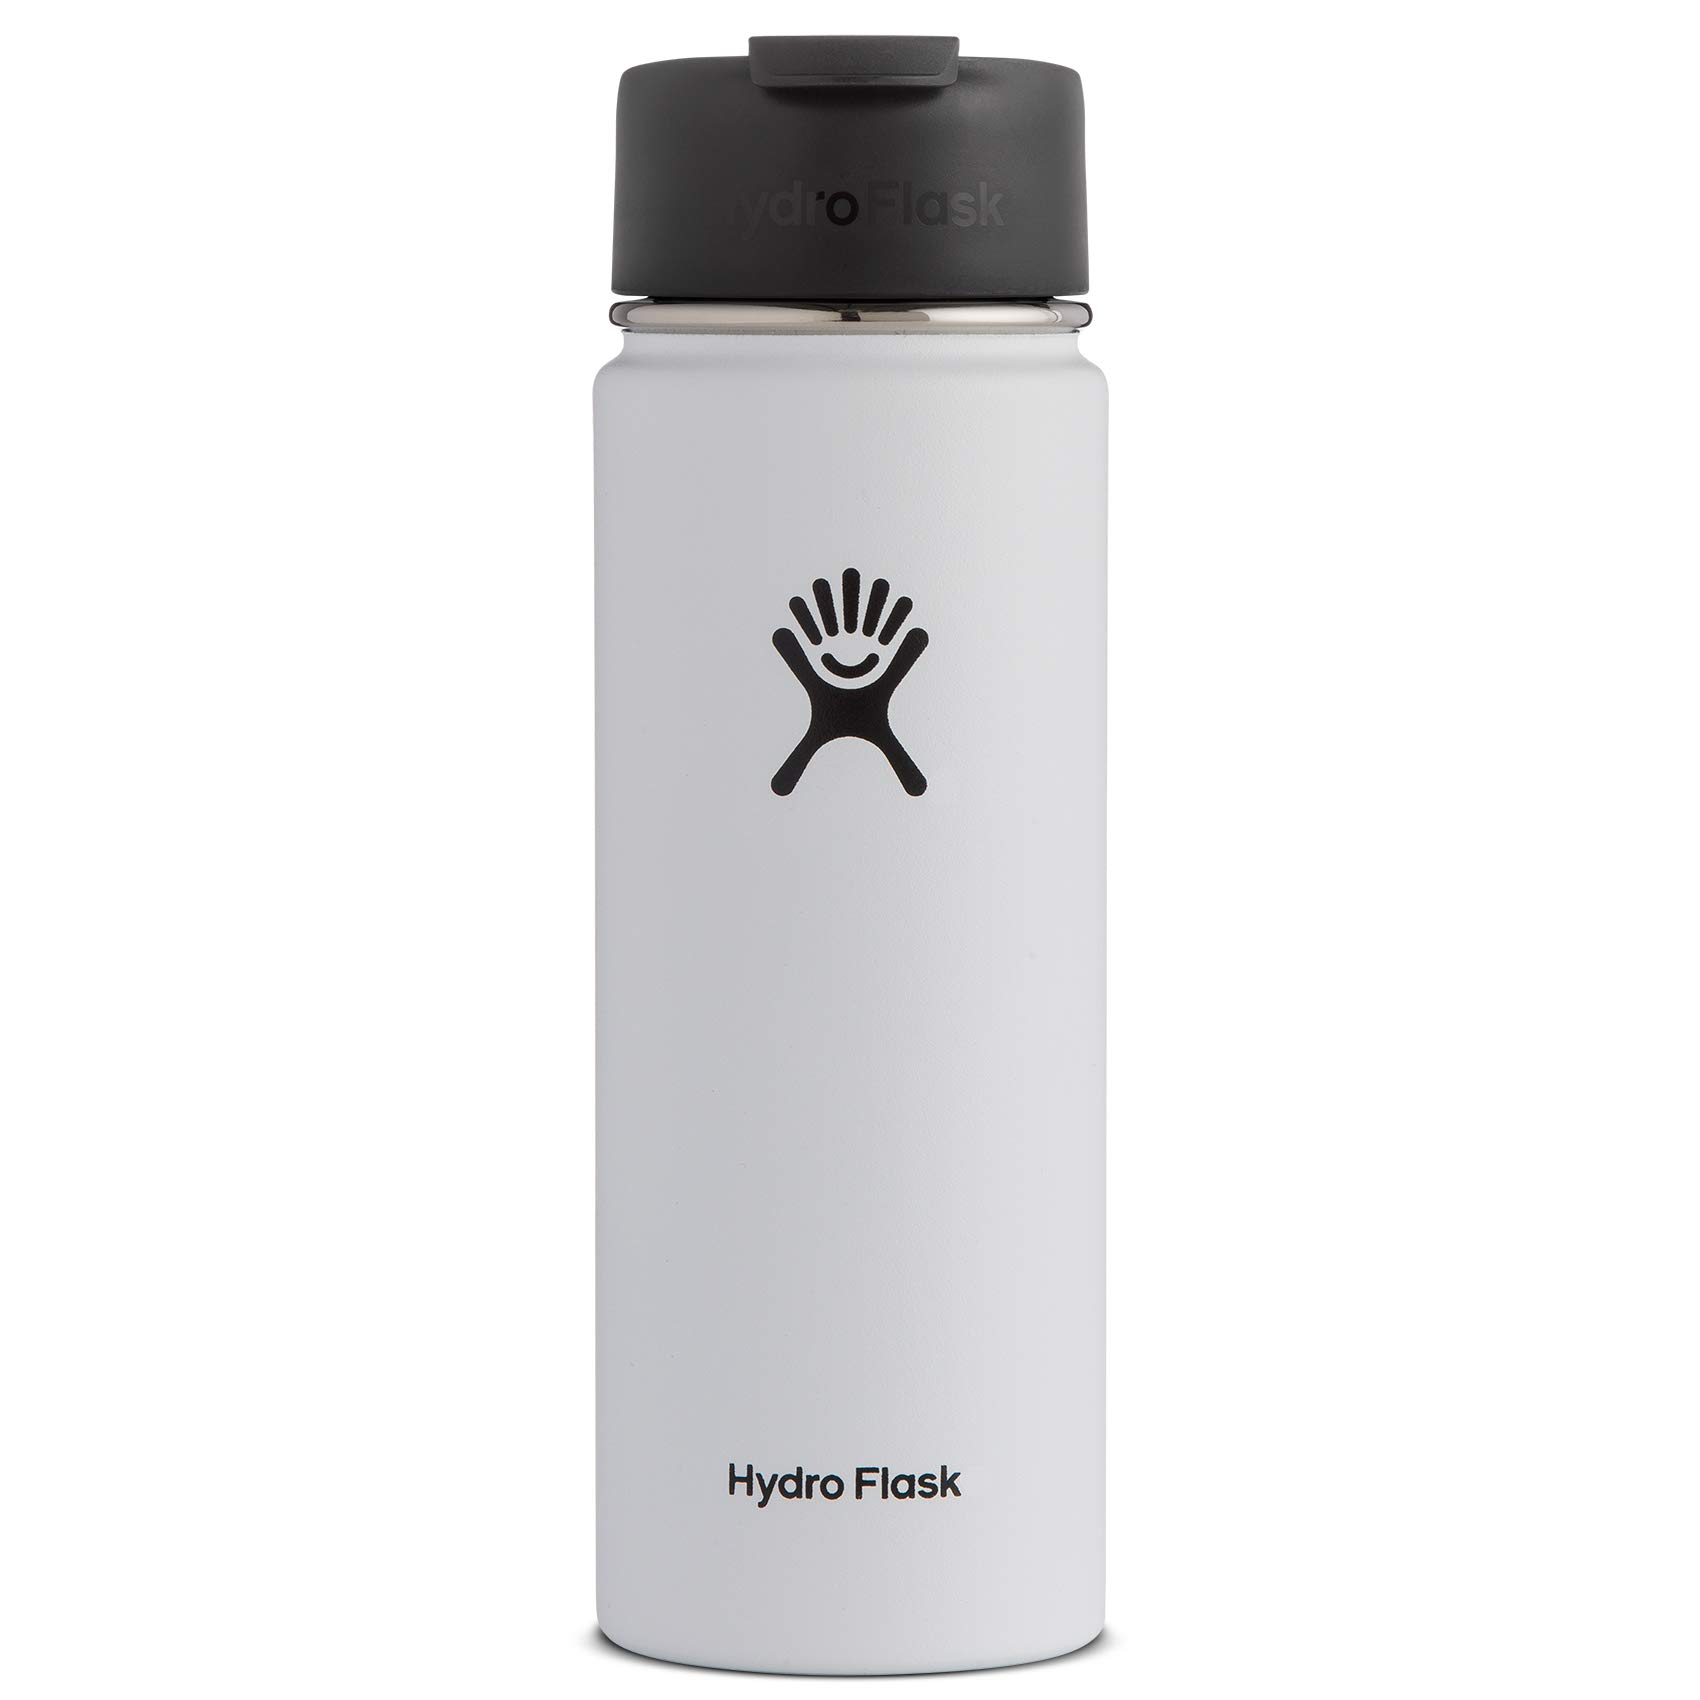 Hydro Flask Travel Coffee Flask, 20 oz, White by Hydro Flask